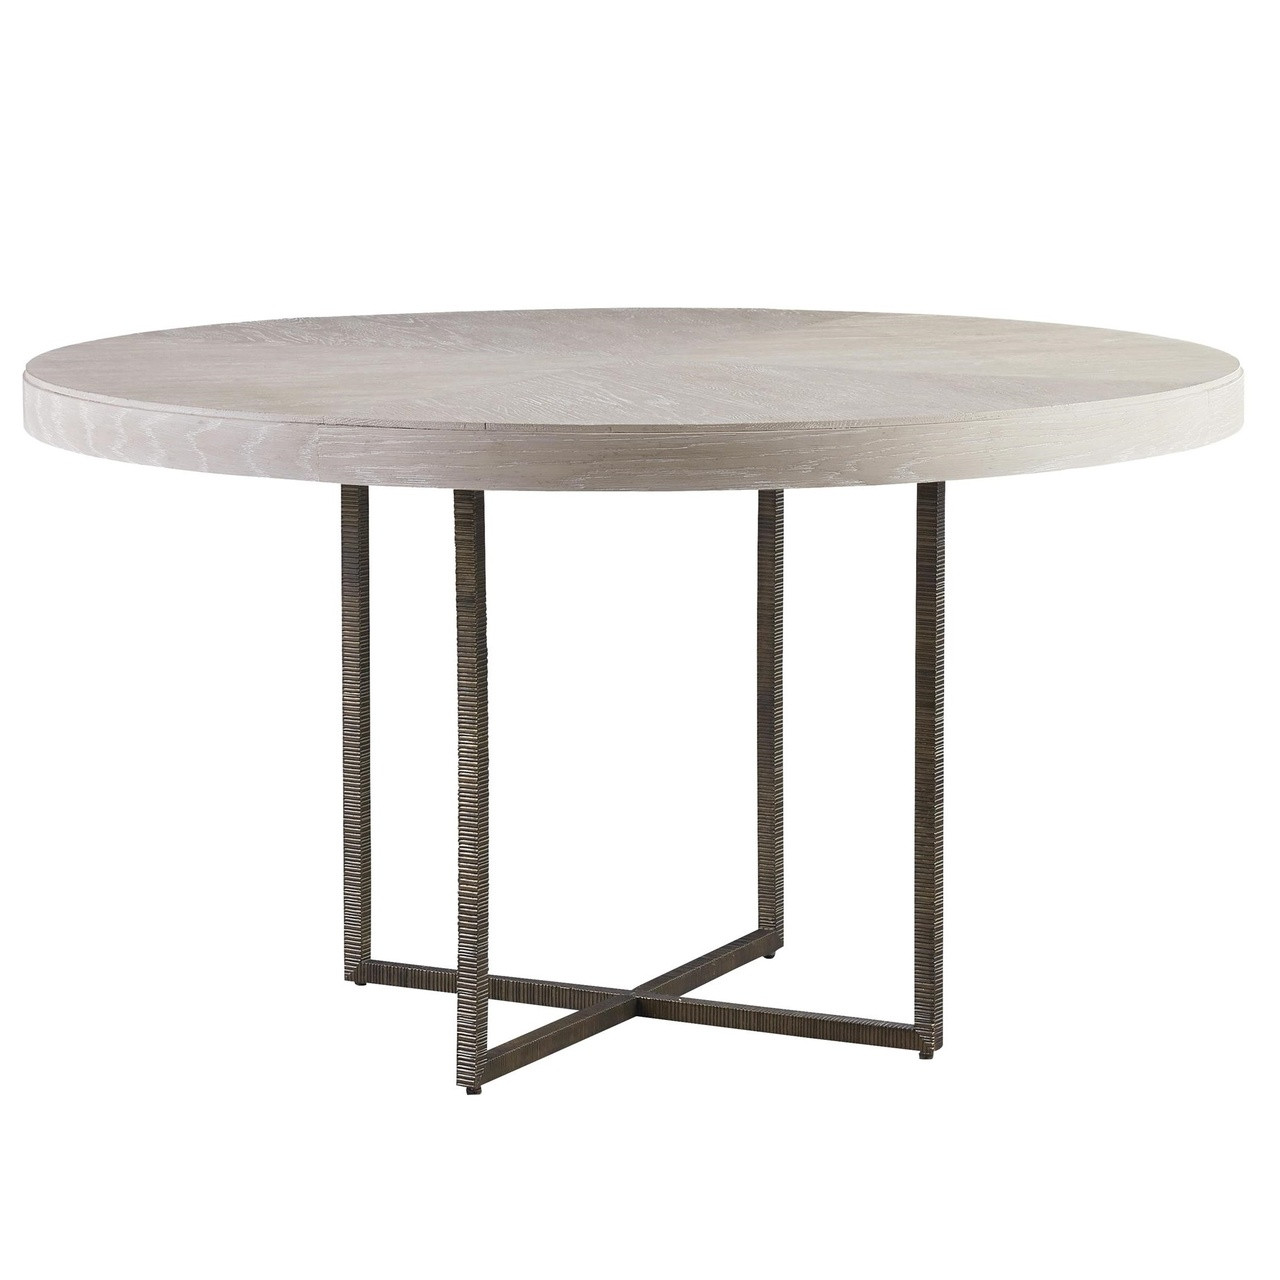 1116cf82b6 Modern Grey Oak Wood + Bronze Metal Leg Round Dining Table 54